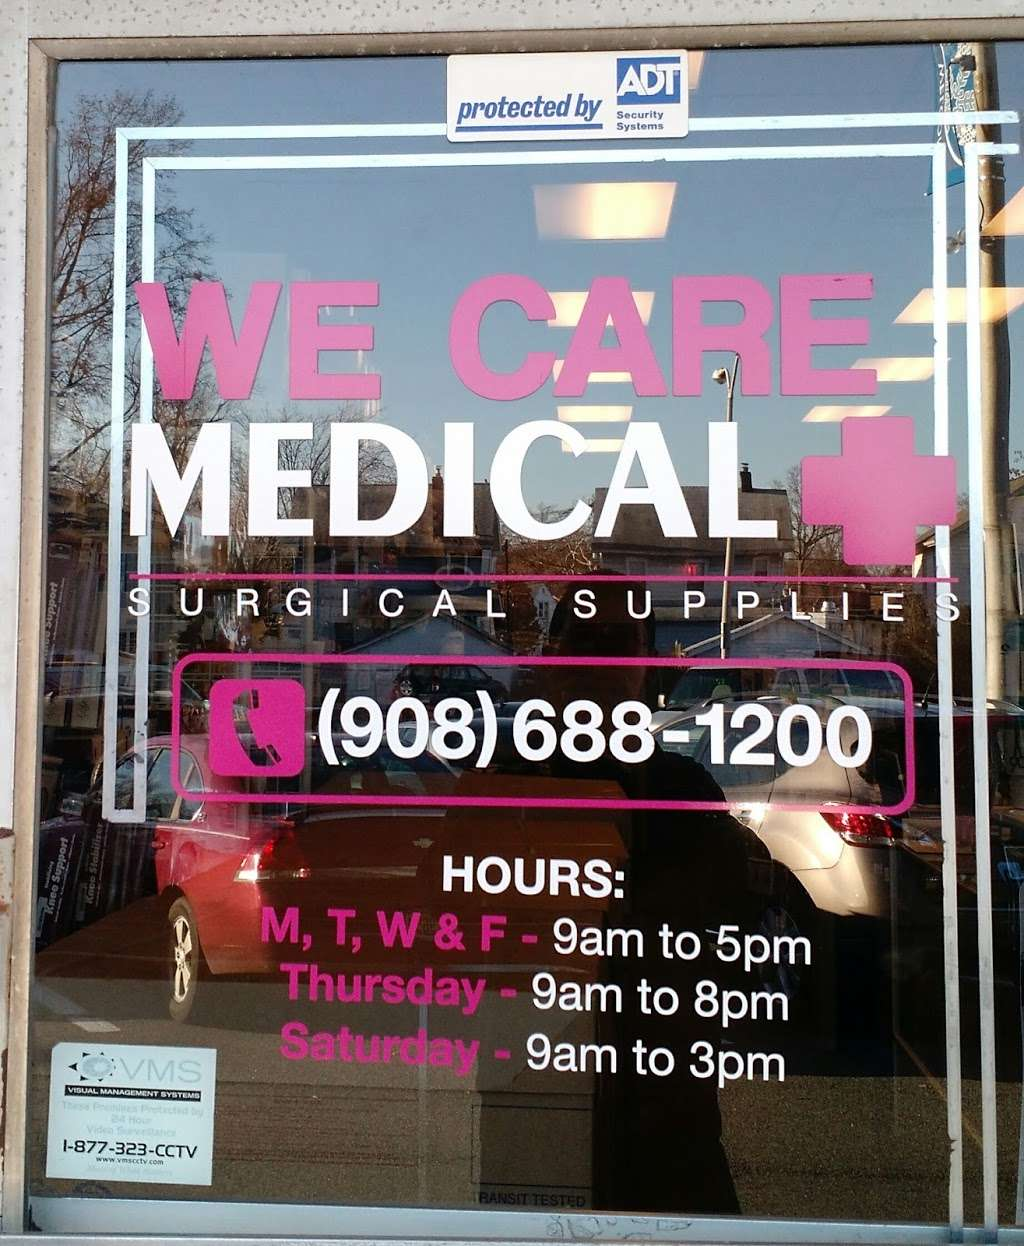 We Care Medical Surgical Supplies - Store | J, 1350